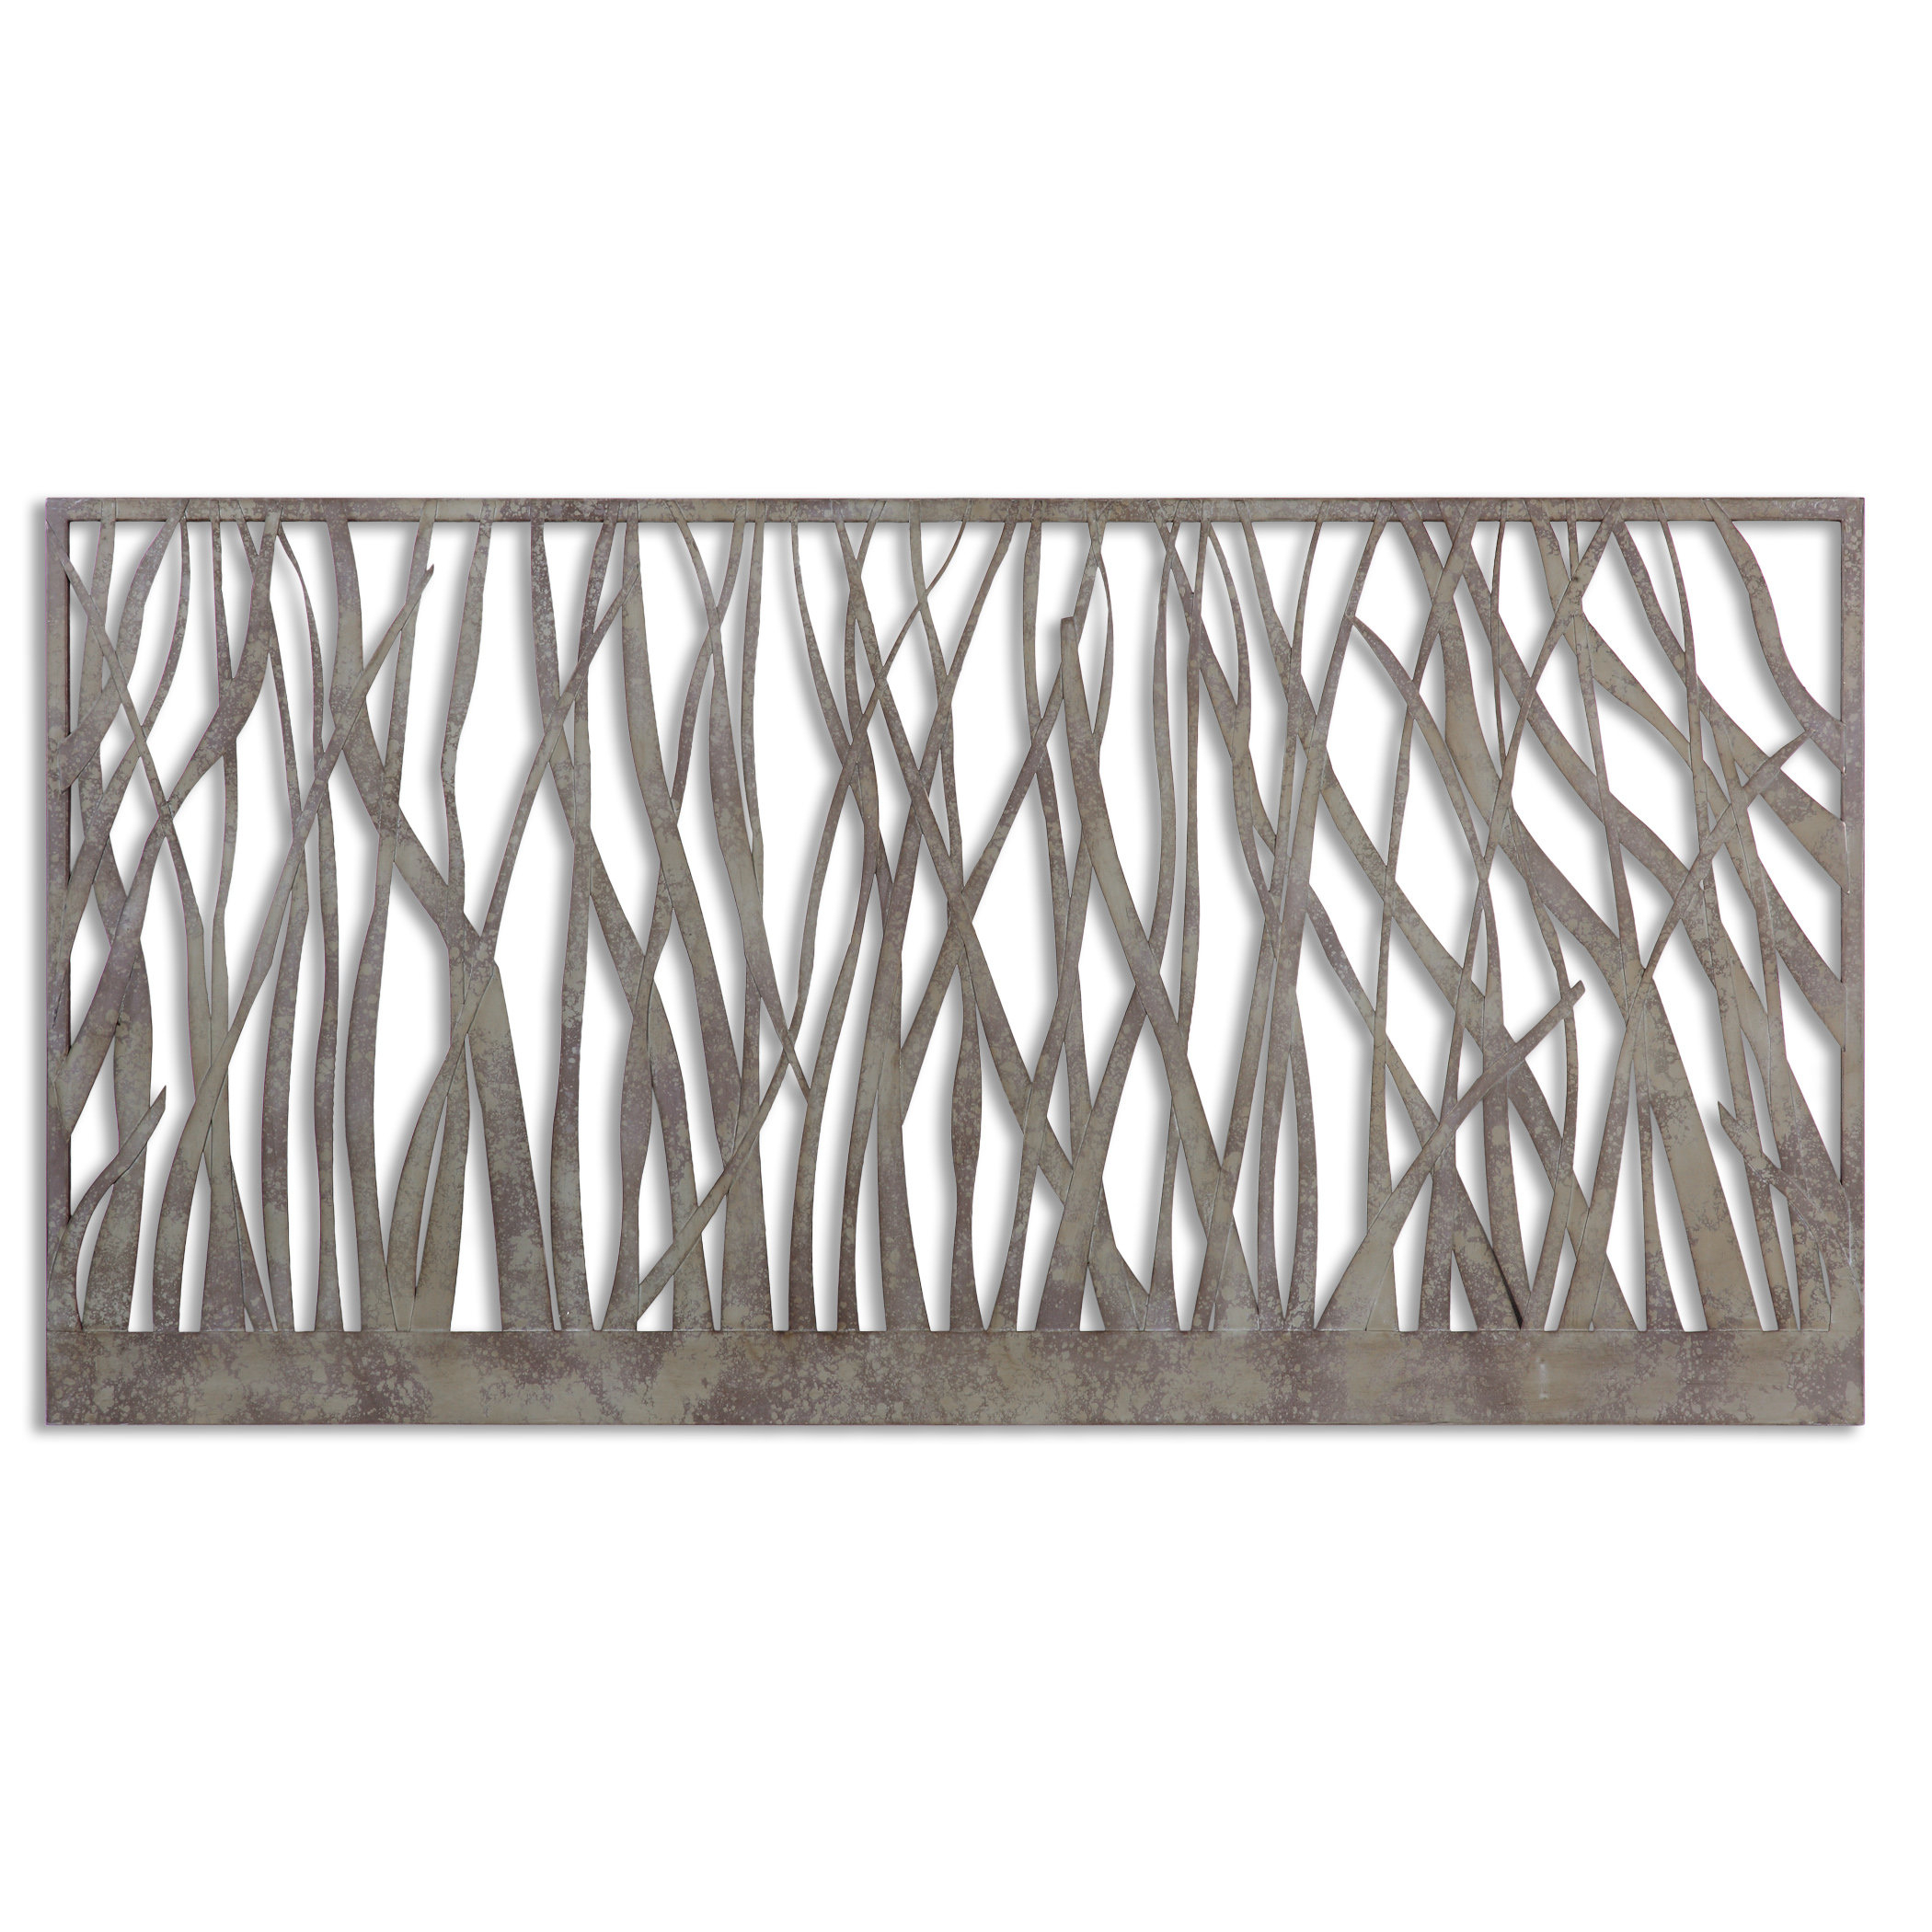 Well Liked Desford Leaf Wall Decor Regarding Olive/gray Metal Wall Decor & Reviews (Gallery 18 of 20)